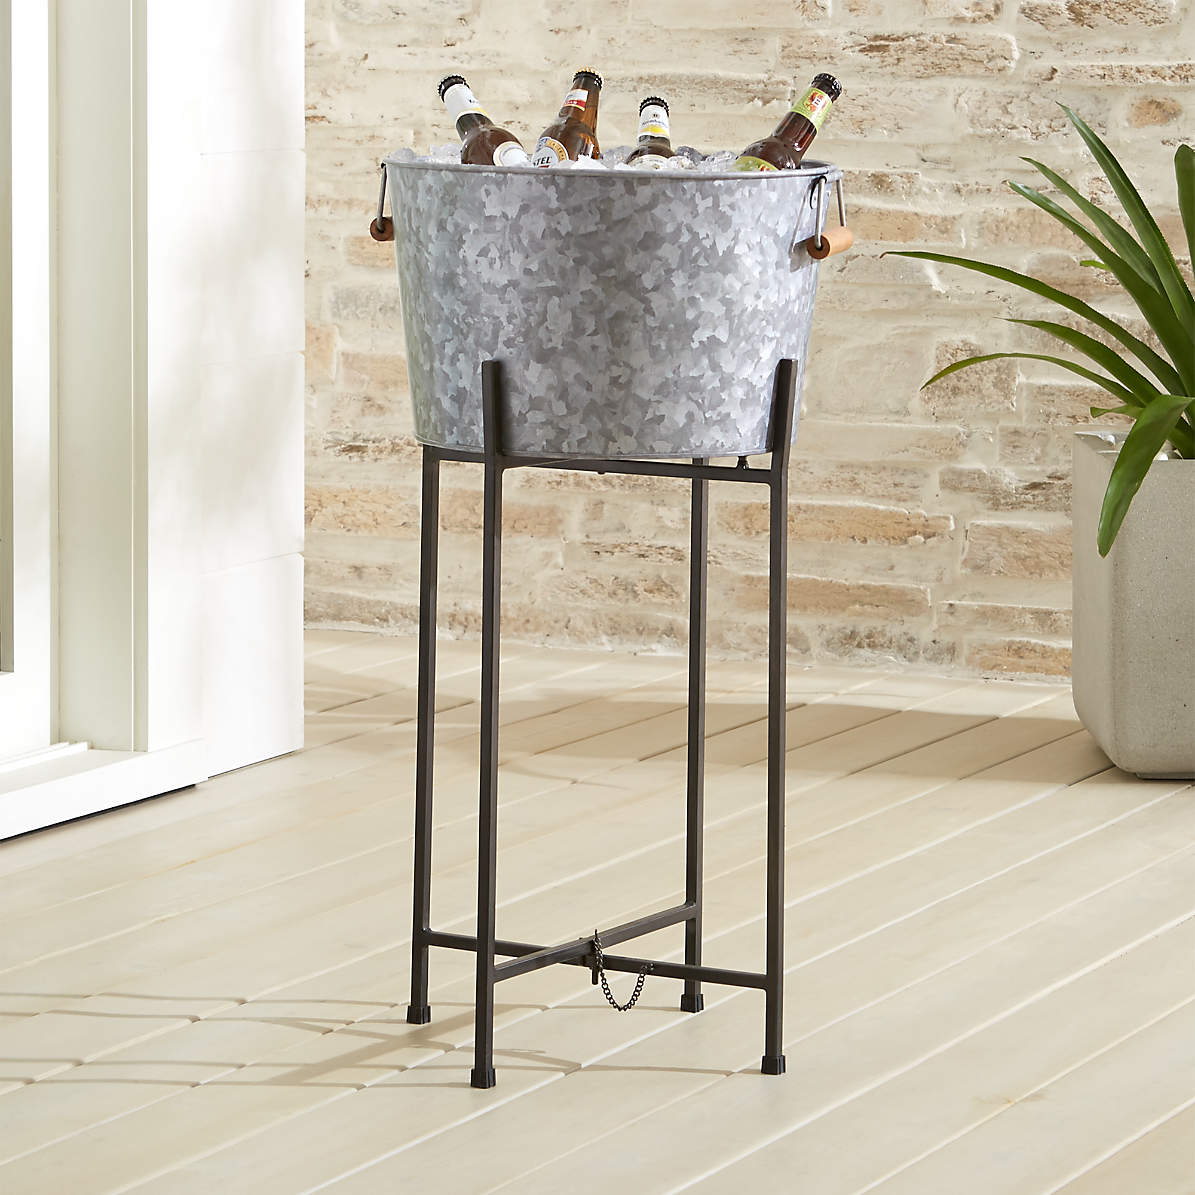 Picture of: Galvanized Beverage Tub With Black Stand Reviews Crate And Barrel